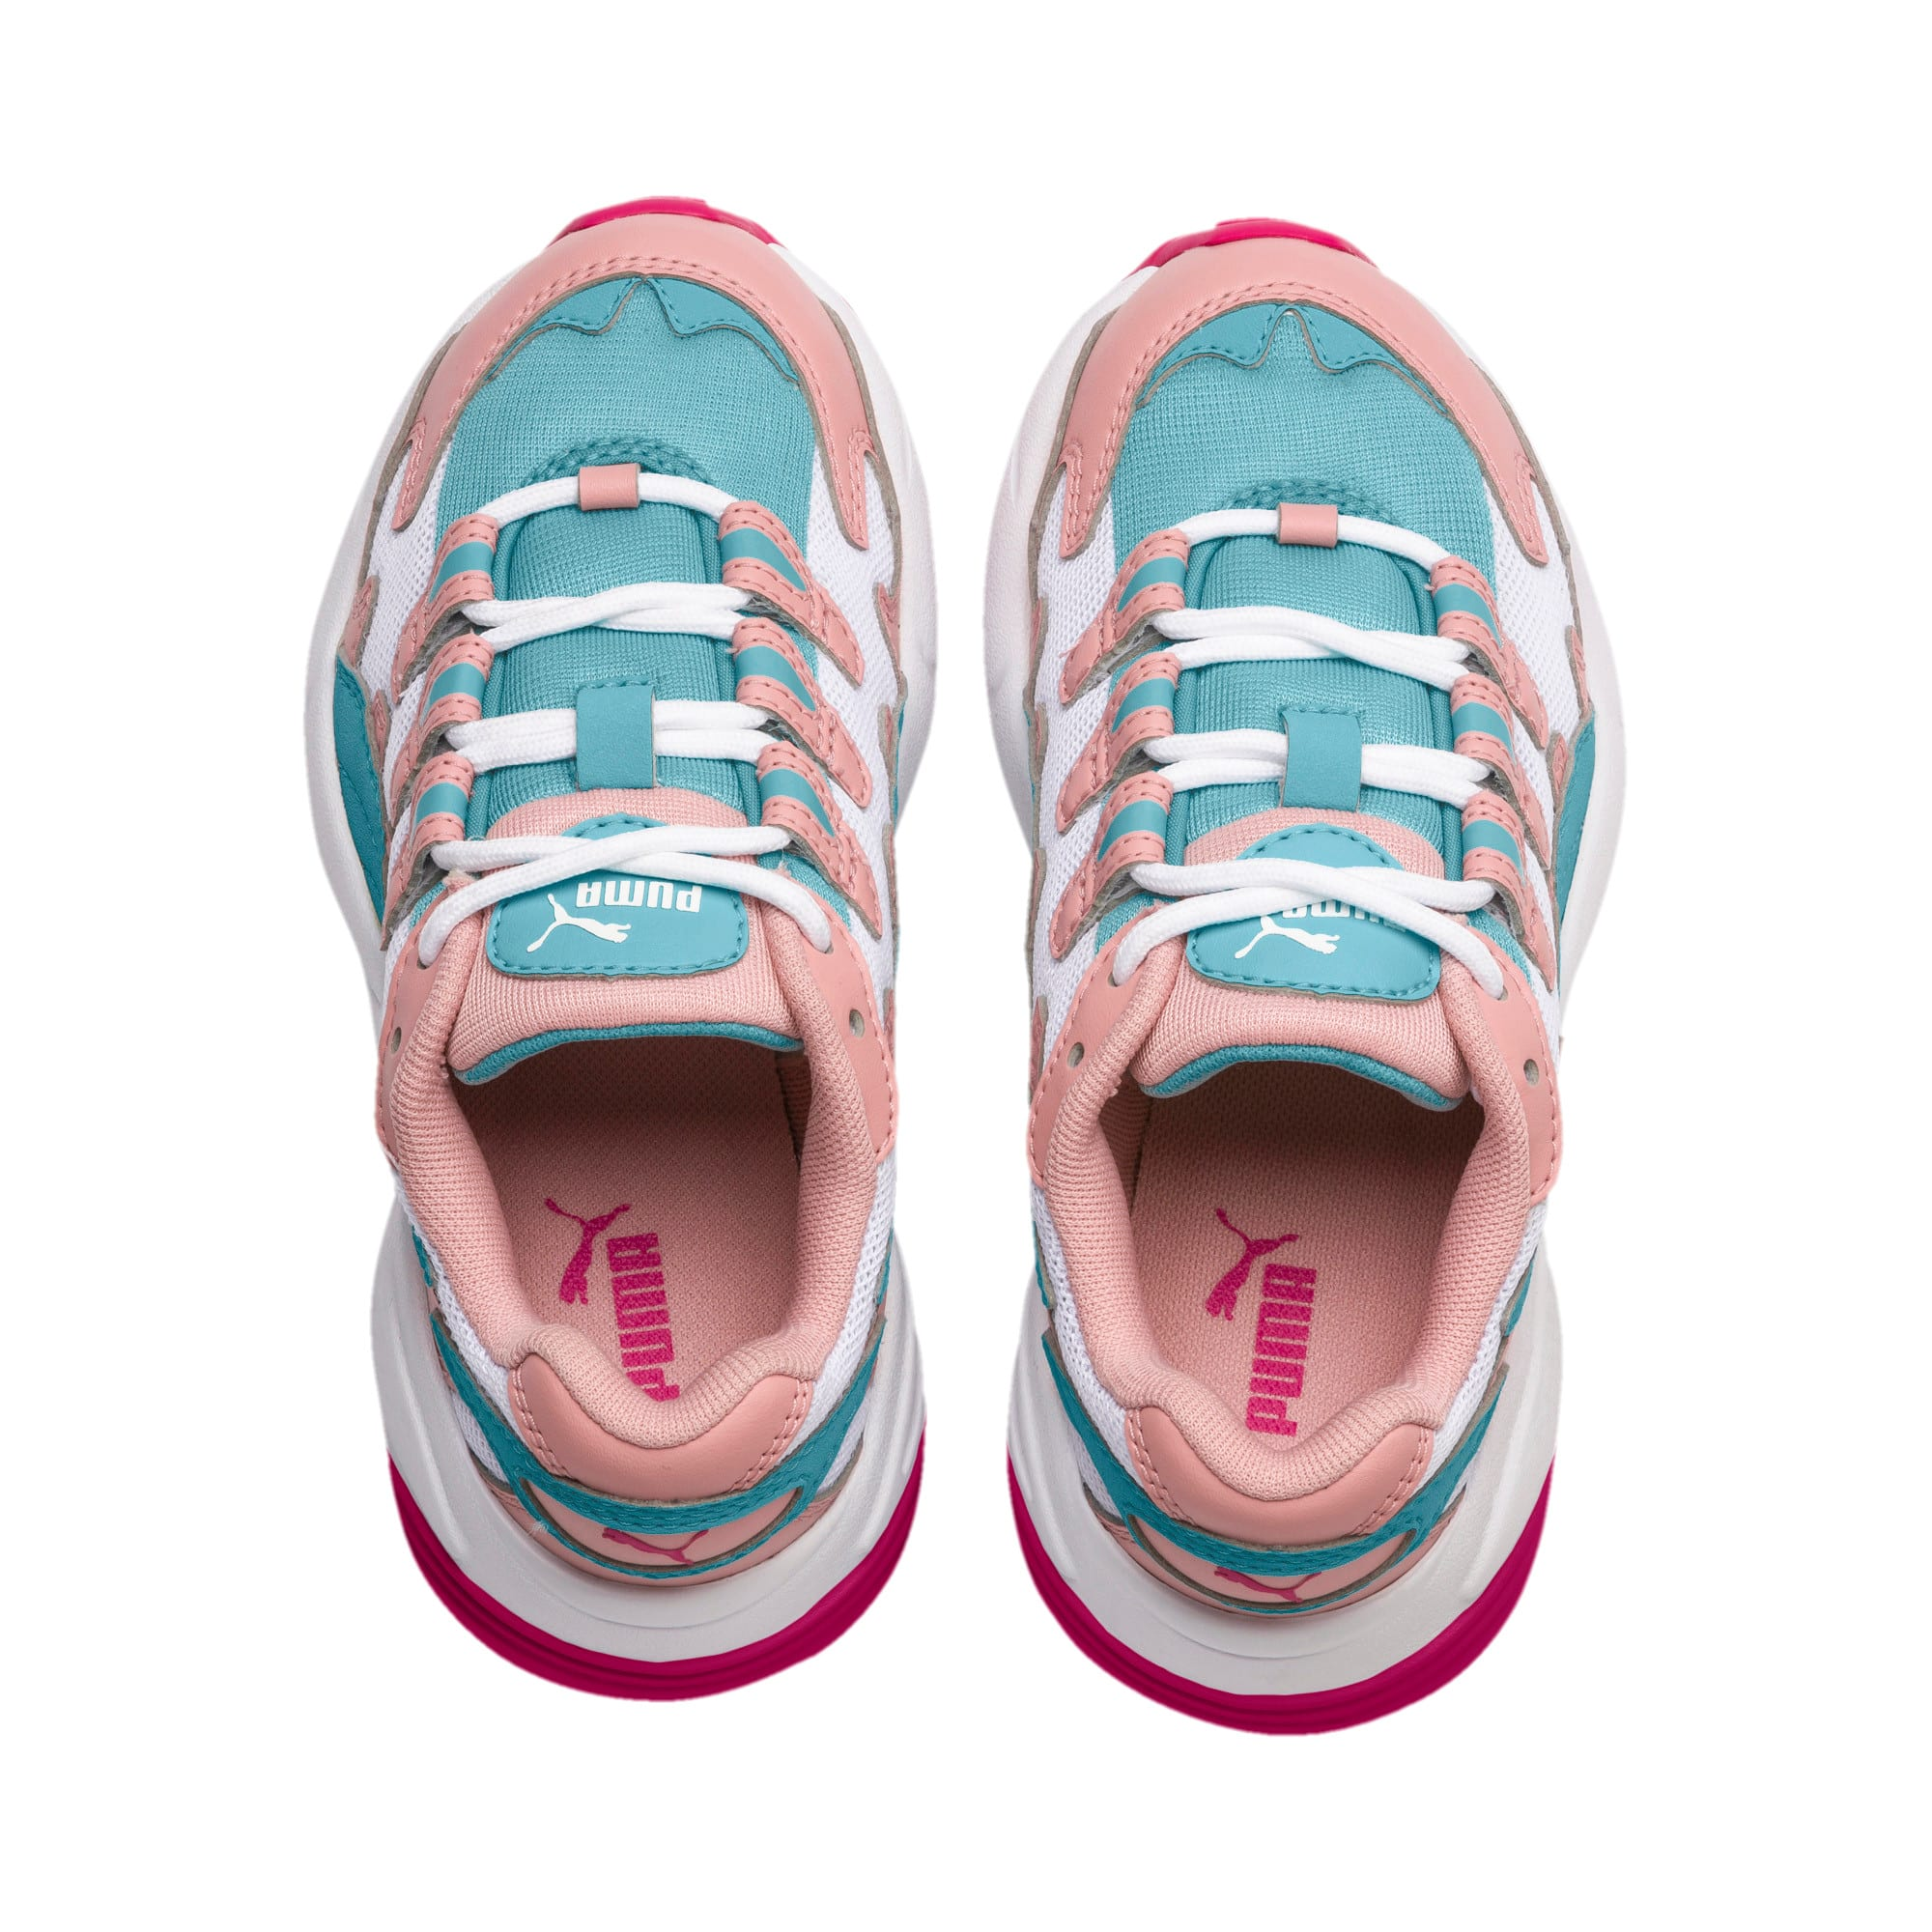 Thumbnail 6 of CELL Alien Cosmic Kids' Trainers, Bridal Rose-Milky Blue, medium